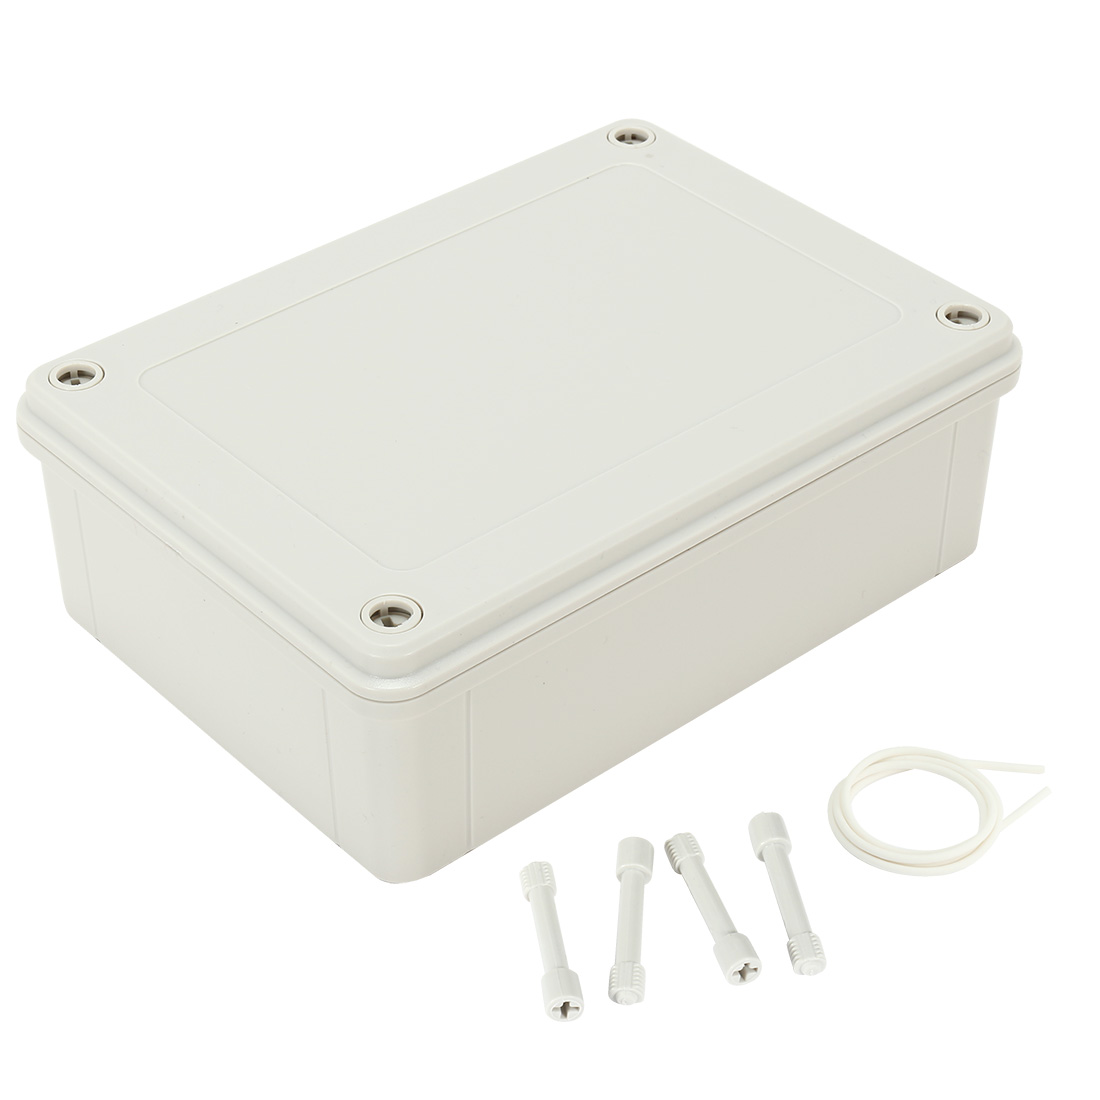 """7.1""""x5.12""""x2.3""""(180mmx130mmx60mm) ABS Dustproof IP65 Junction Box Universal Electric Project Enclosure"""